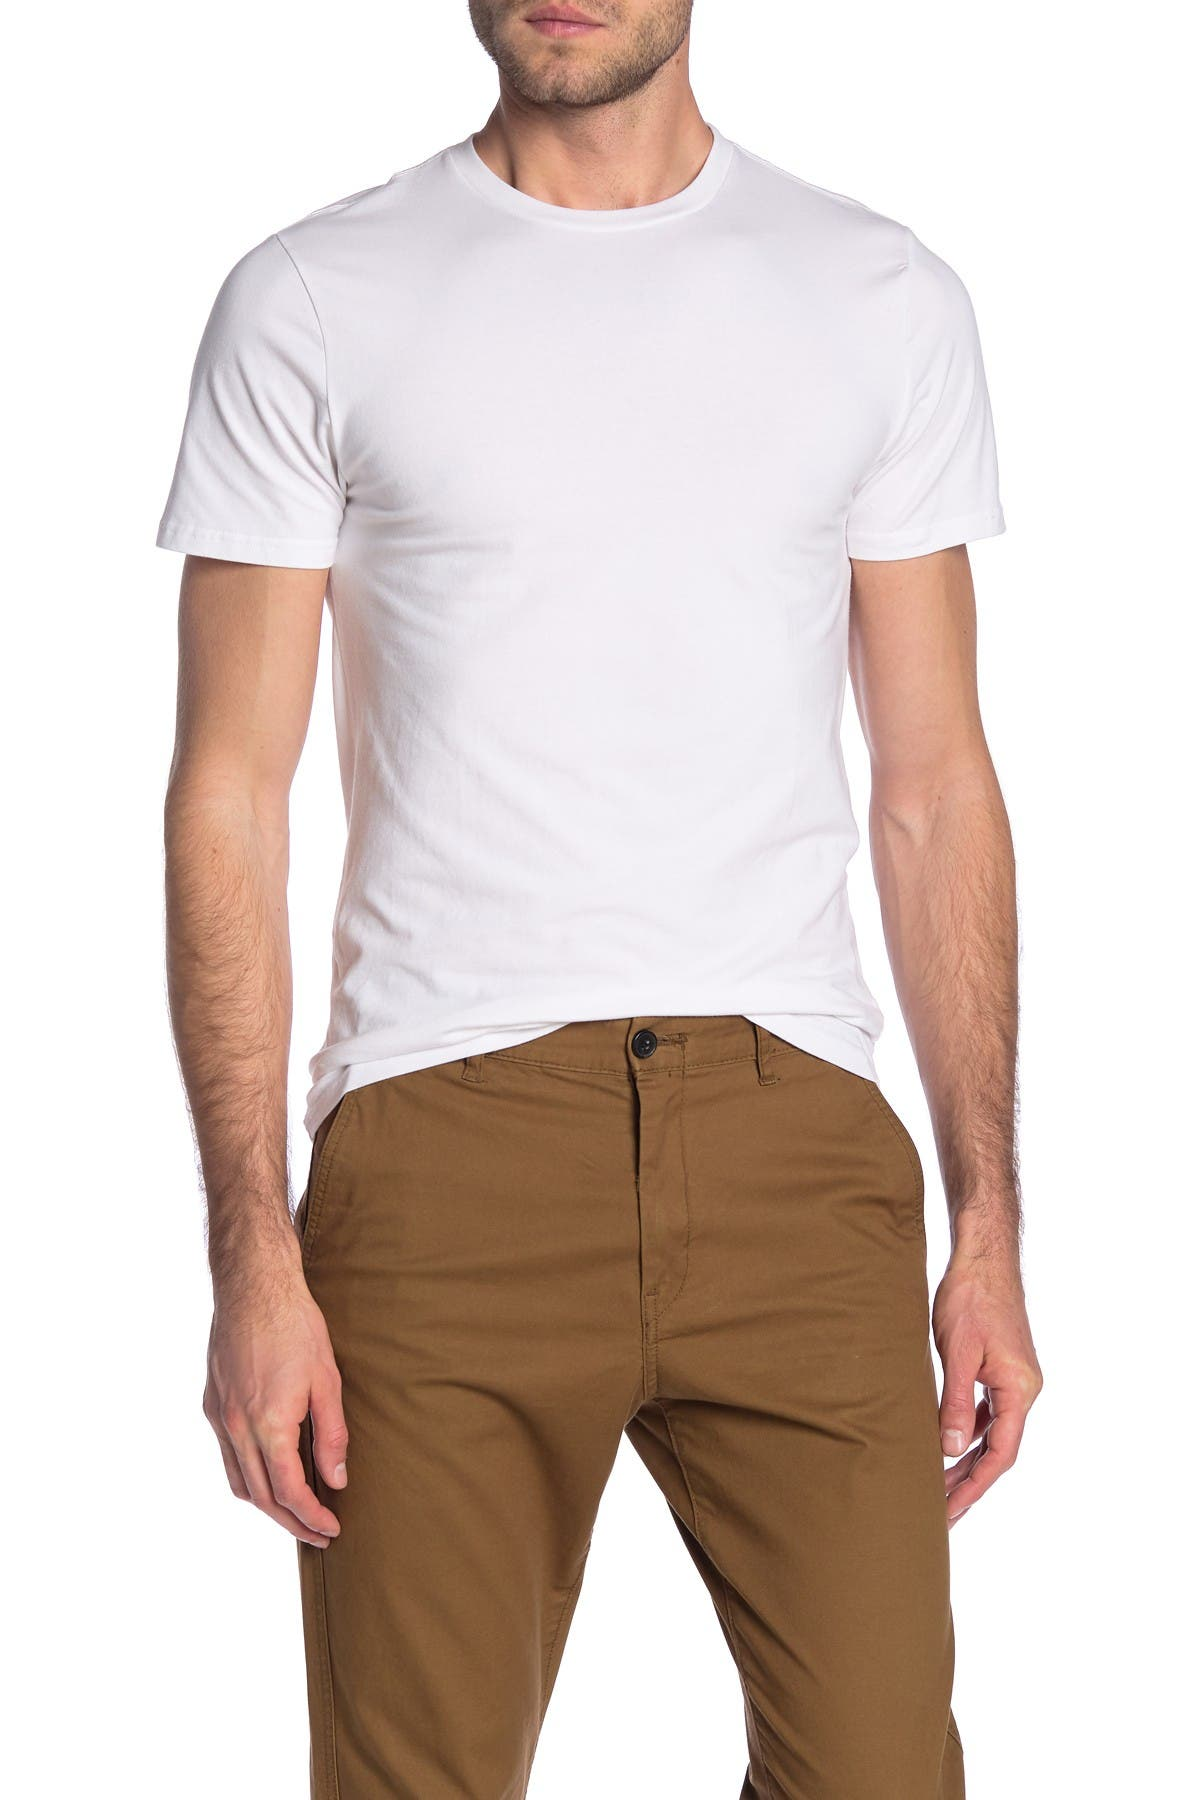 Image of Nordstrom Rack Stretch Cotton Crew Neck T-Shirt - Pack of 3